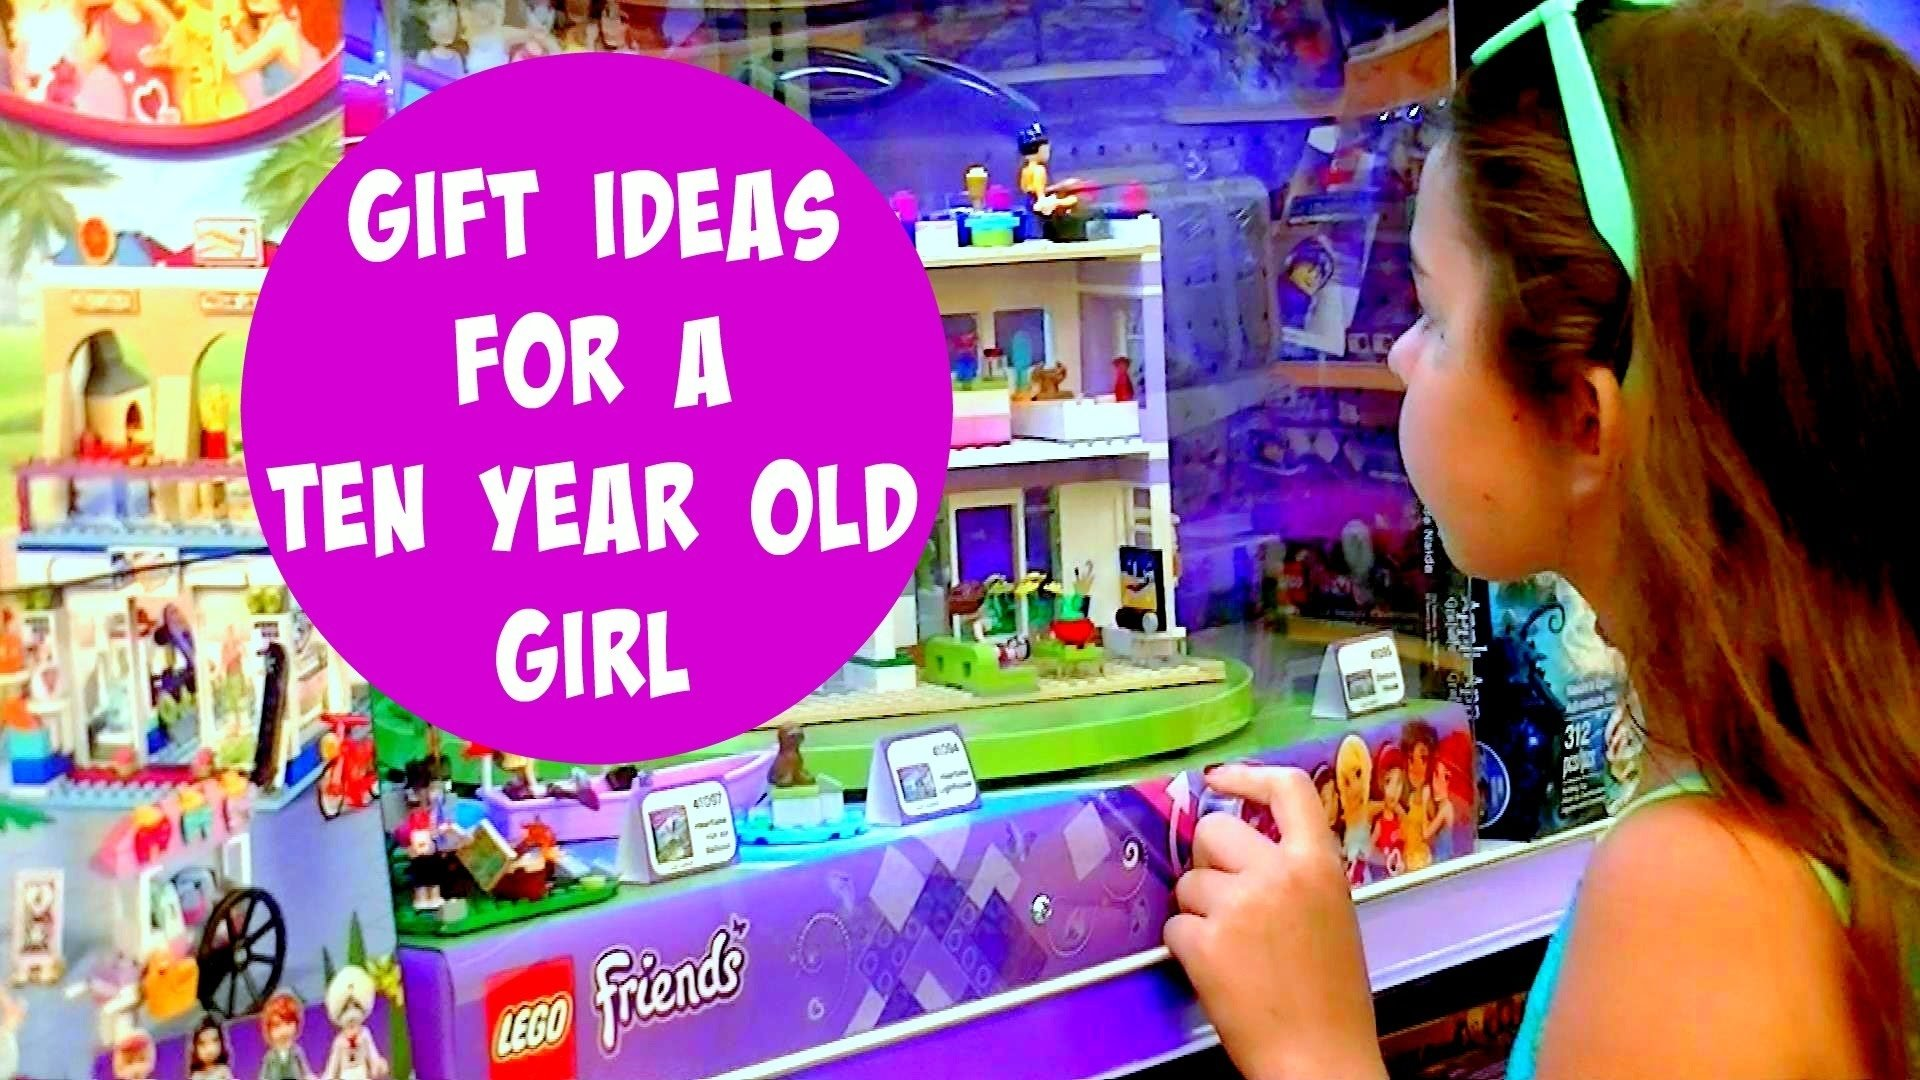 birthday gift ideas for a 10 year old girl under $30 - youtube